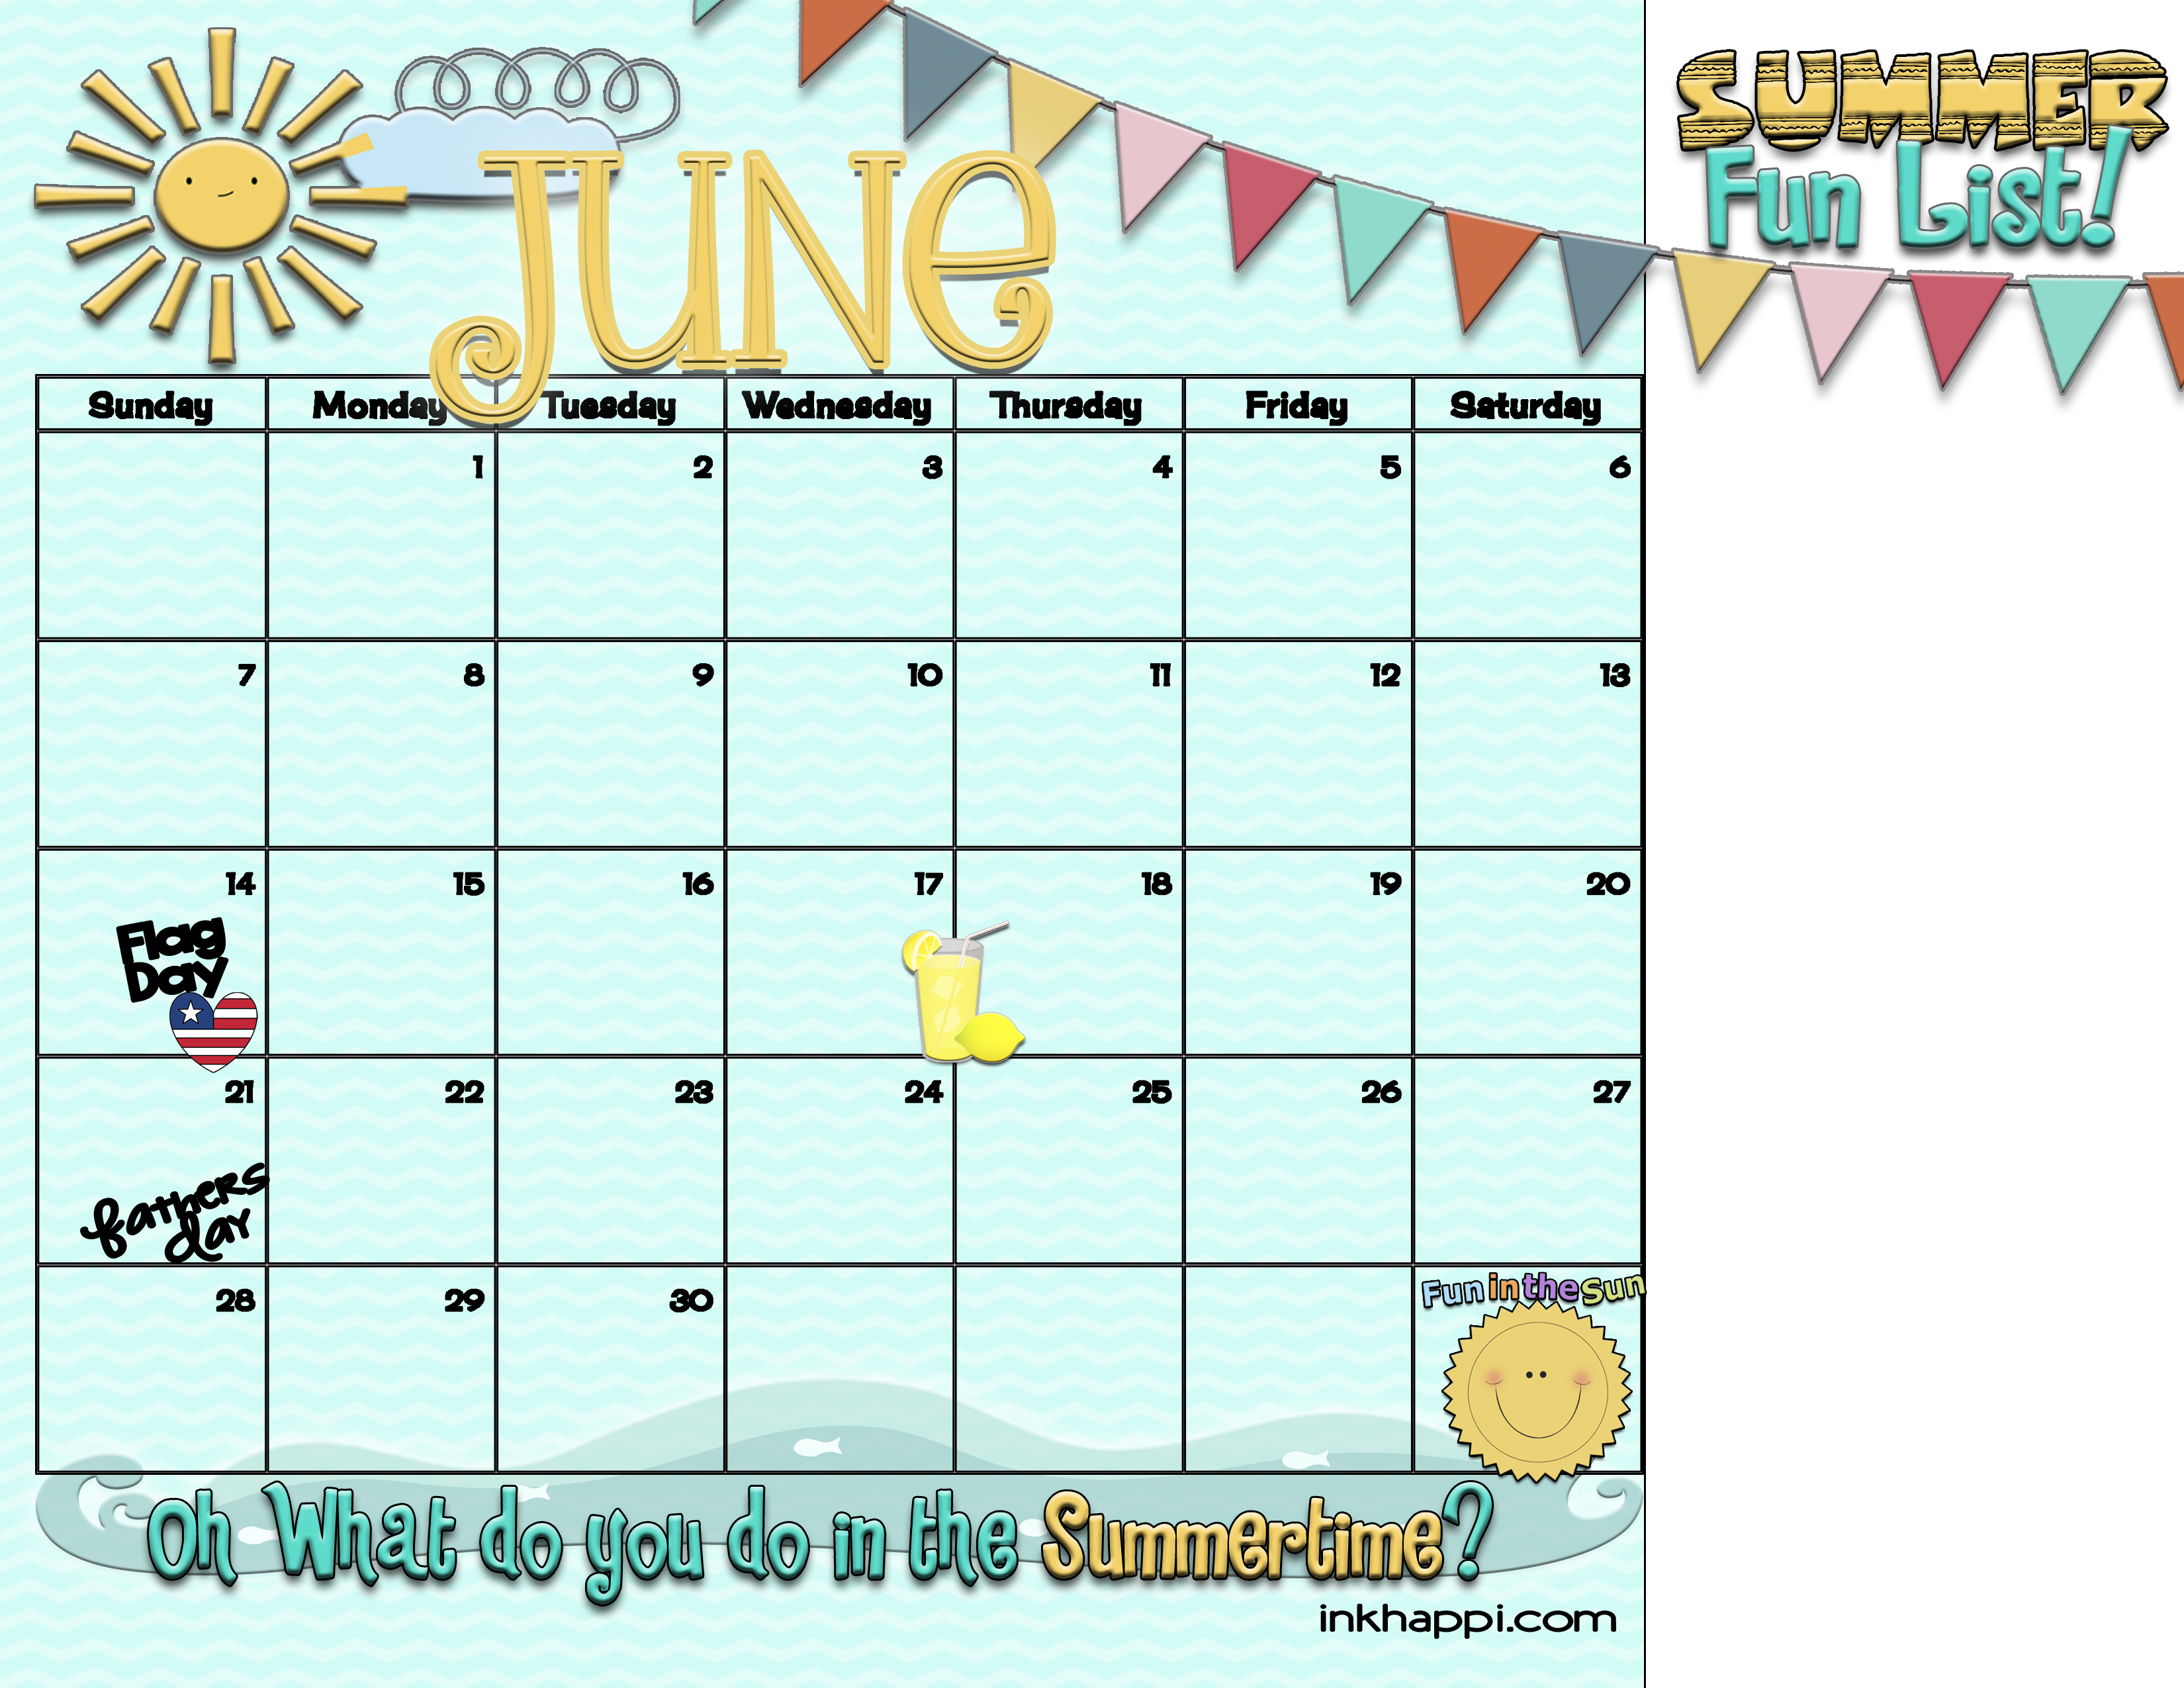 Summertime Activities And Free Planning Calendars